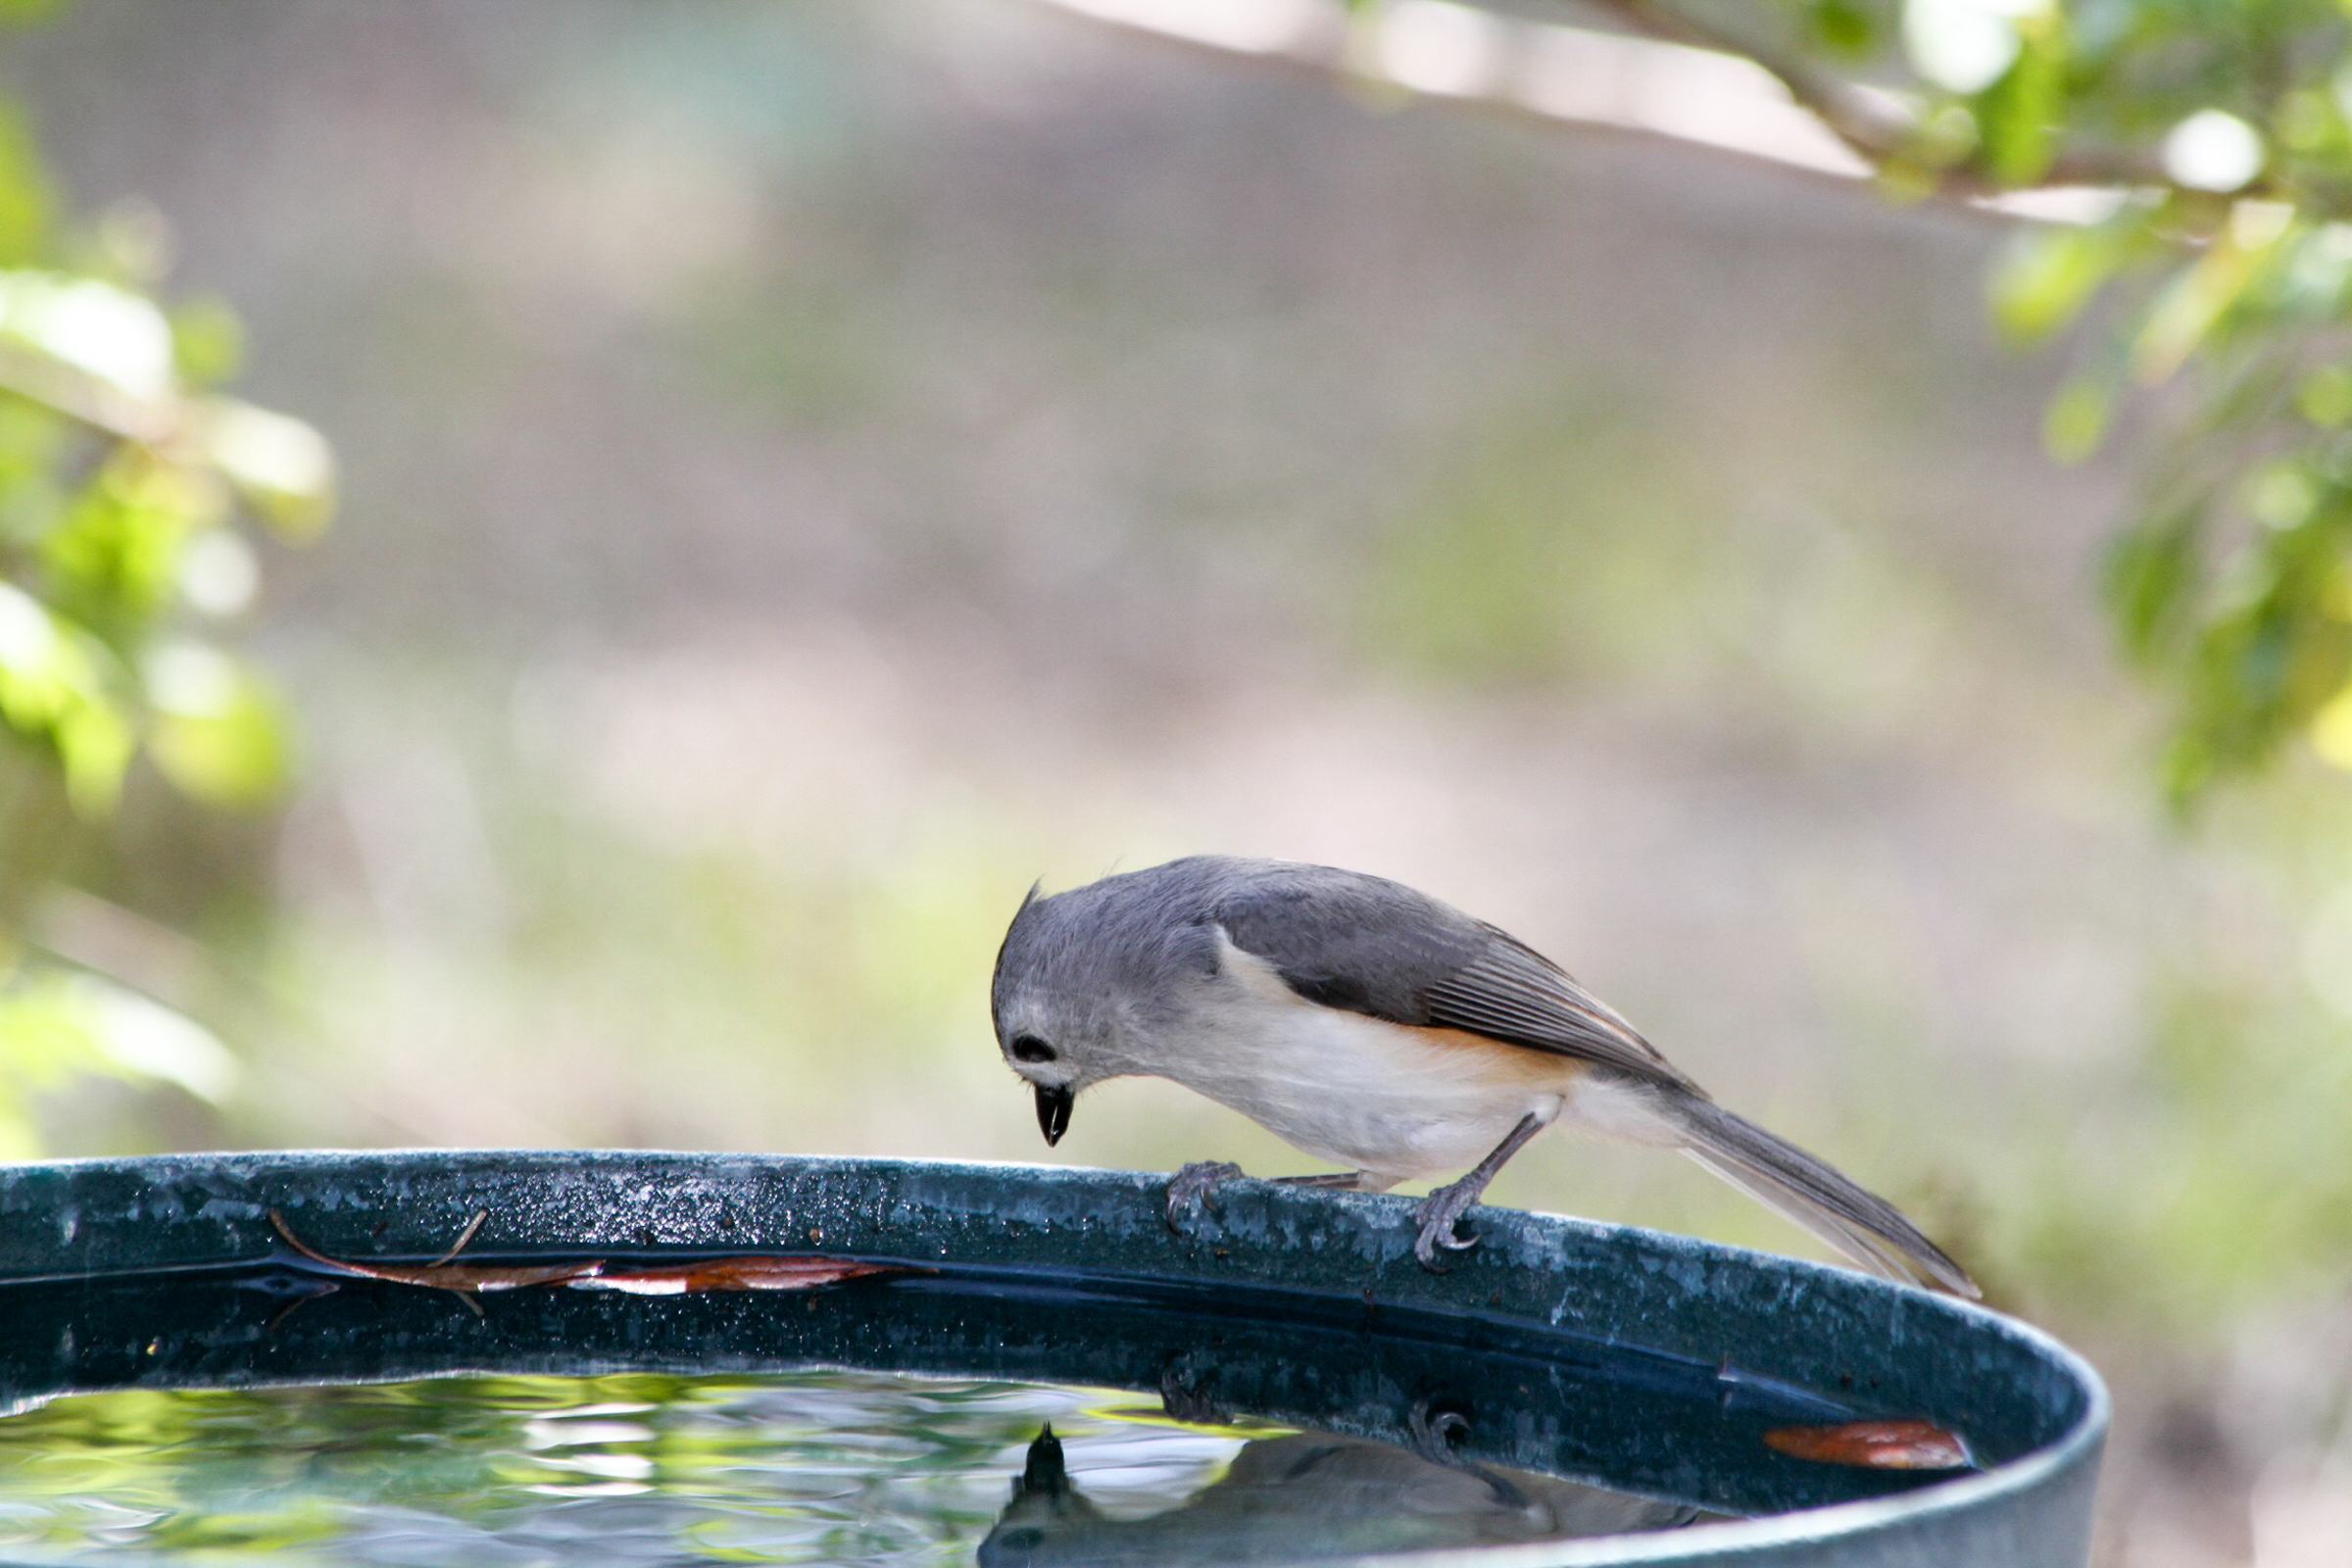 19 tufted titmouse kk dianne chapman gbbc 2015 high res%20%281%29